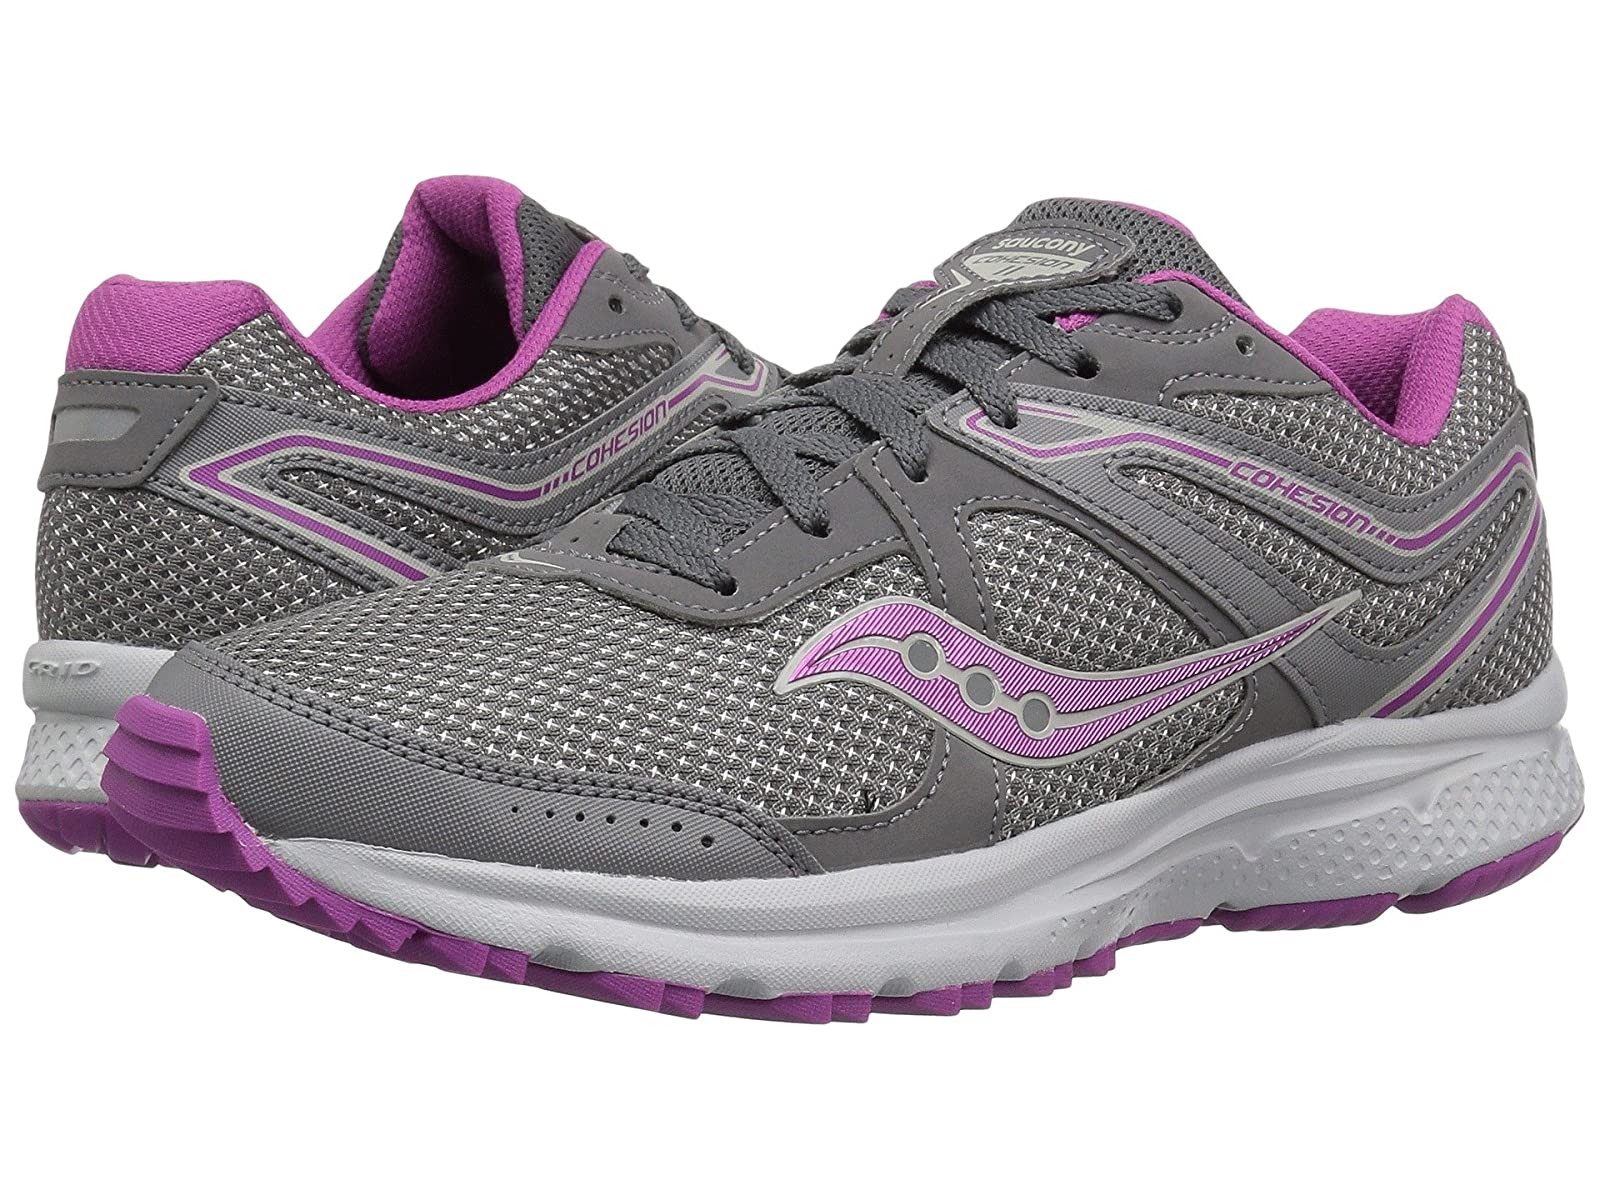 Saucony Cohesion TR11Cheap and distinctive eye-catching shoes